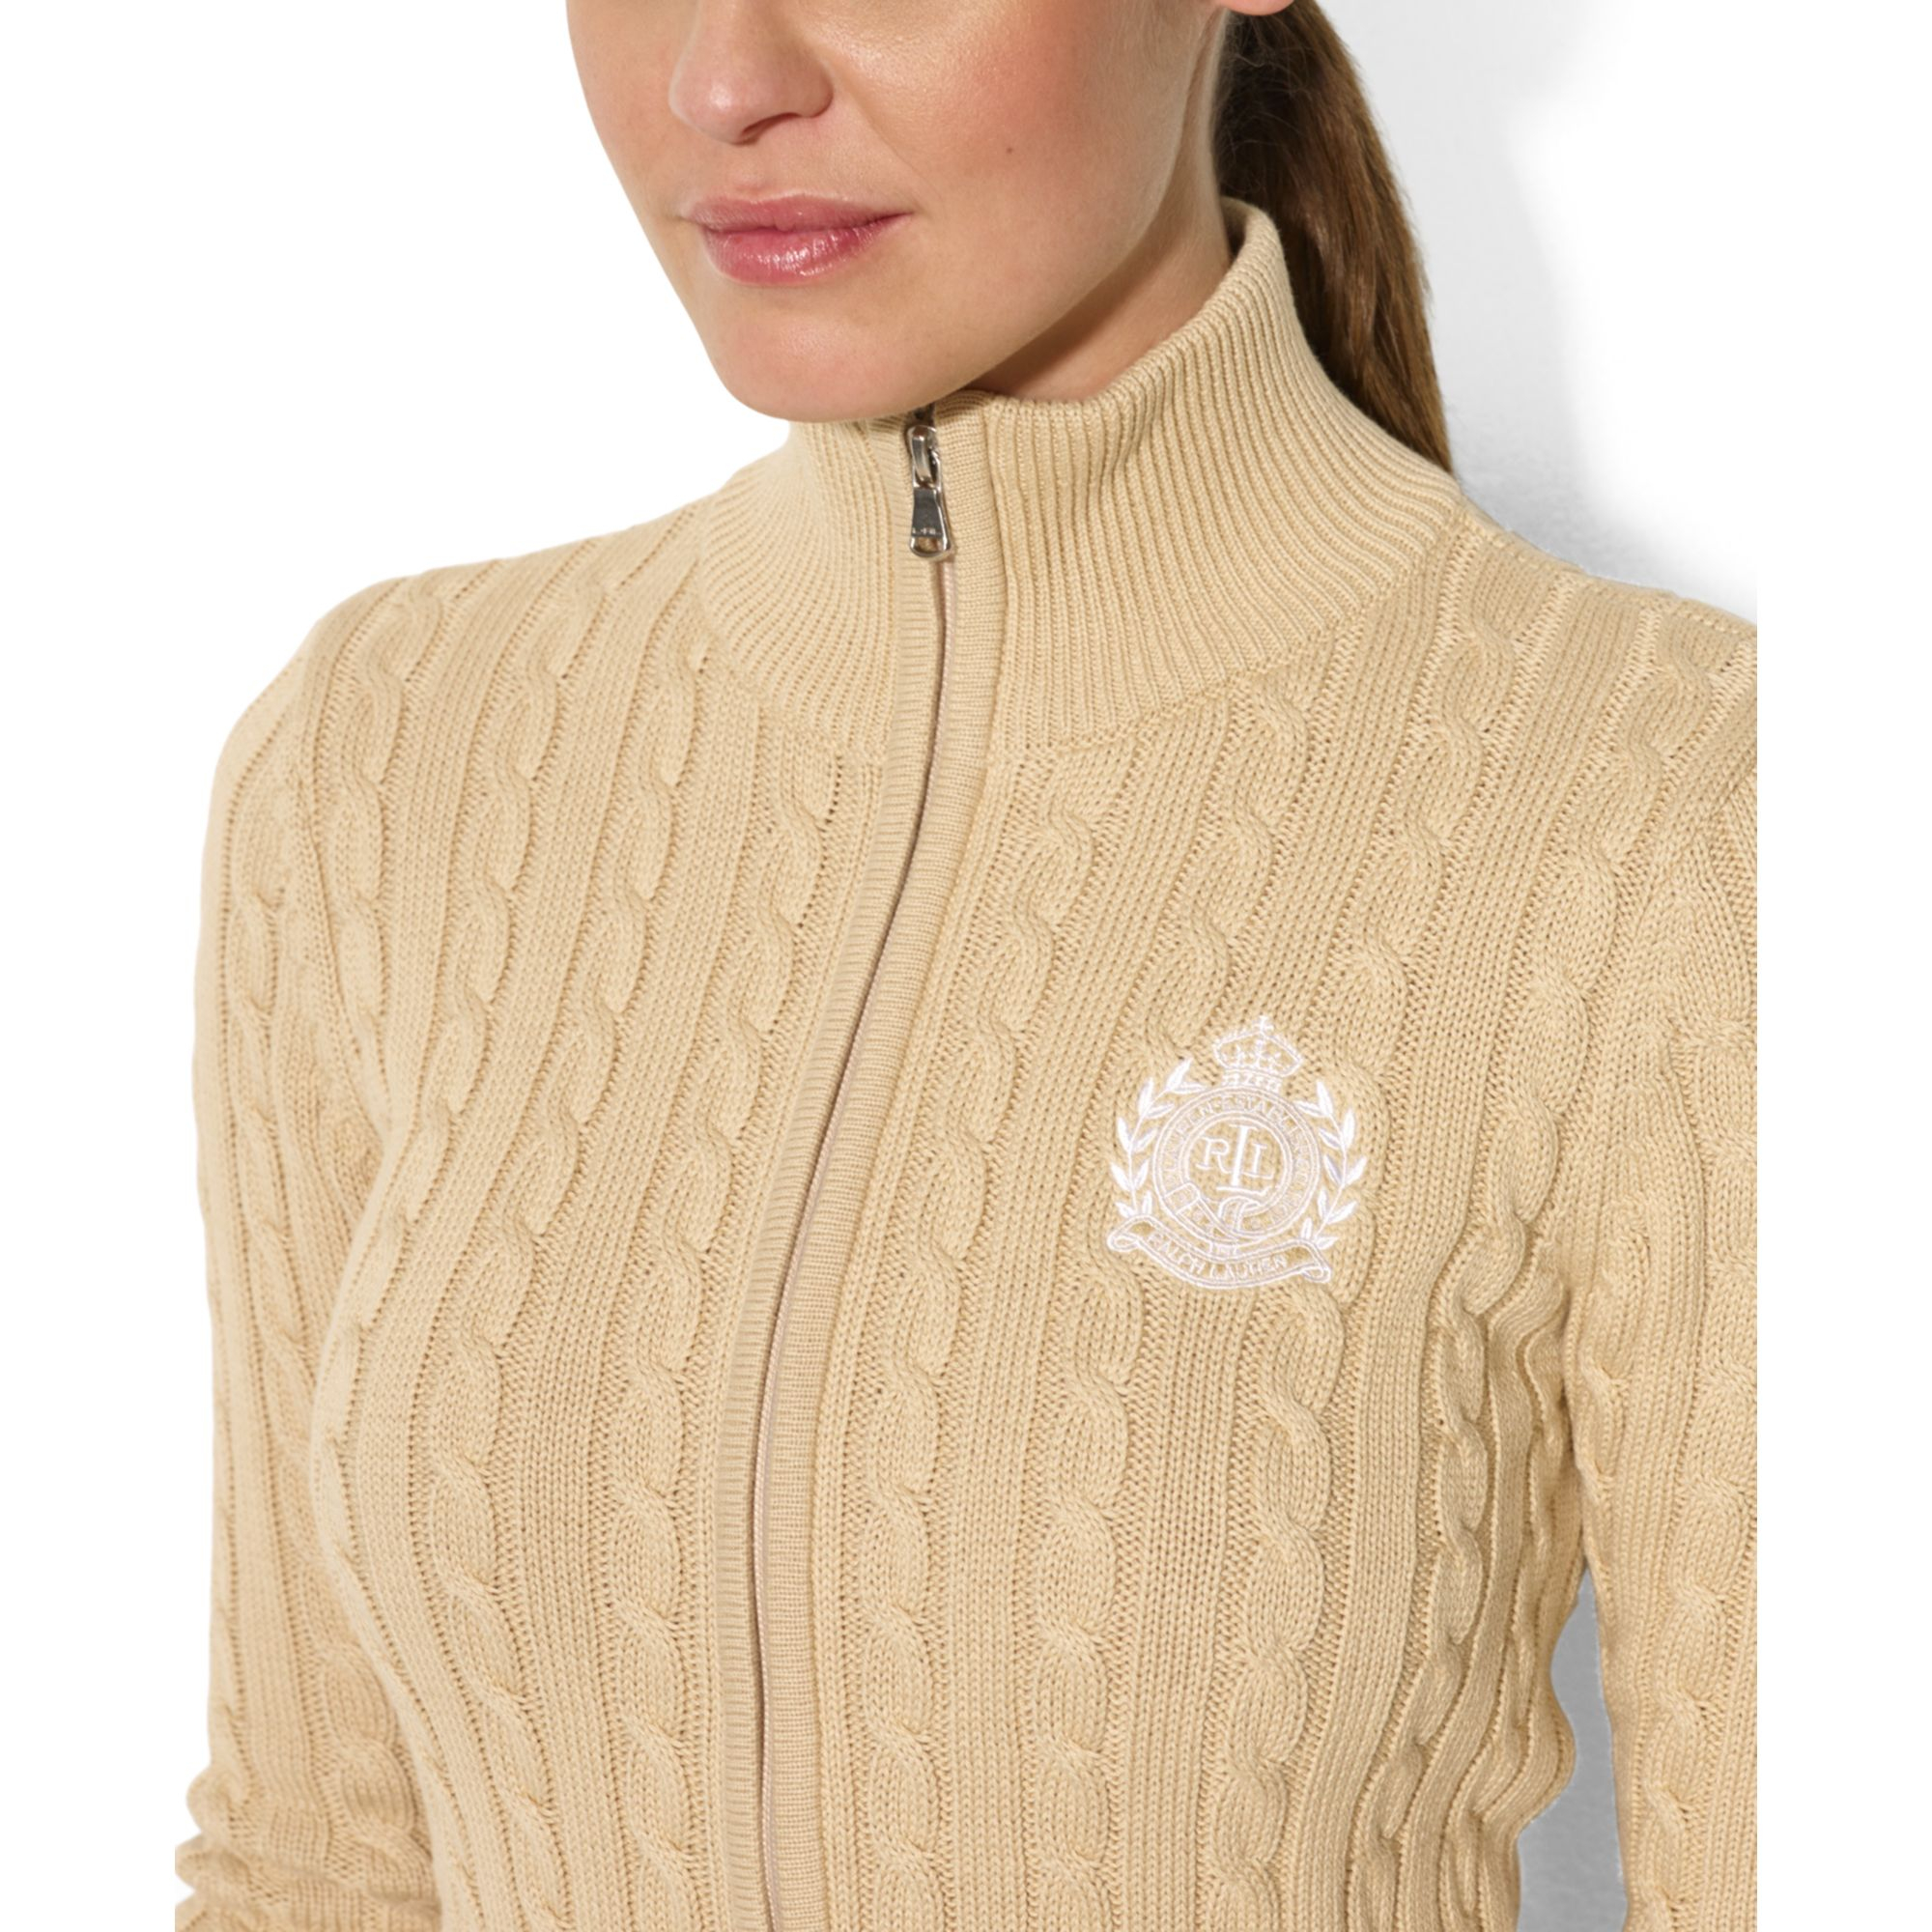 Lauren By Ralph Lauren Cableknit Zipup Cardigan In Tan